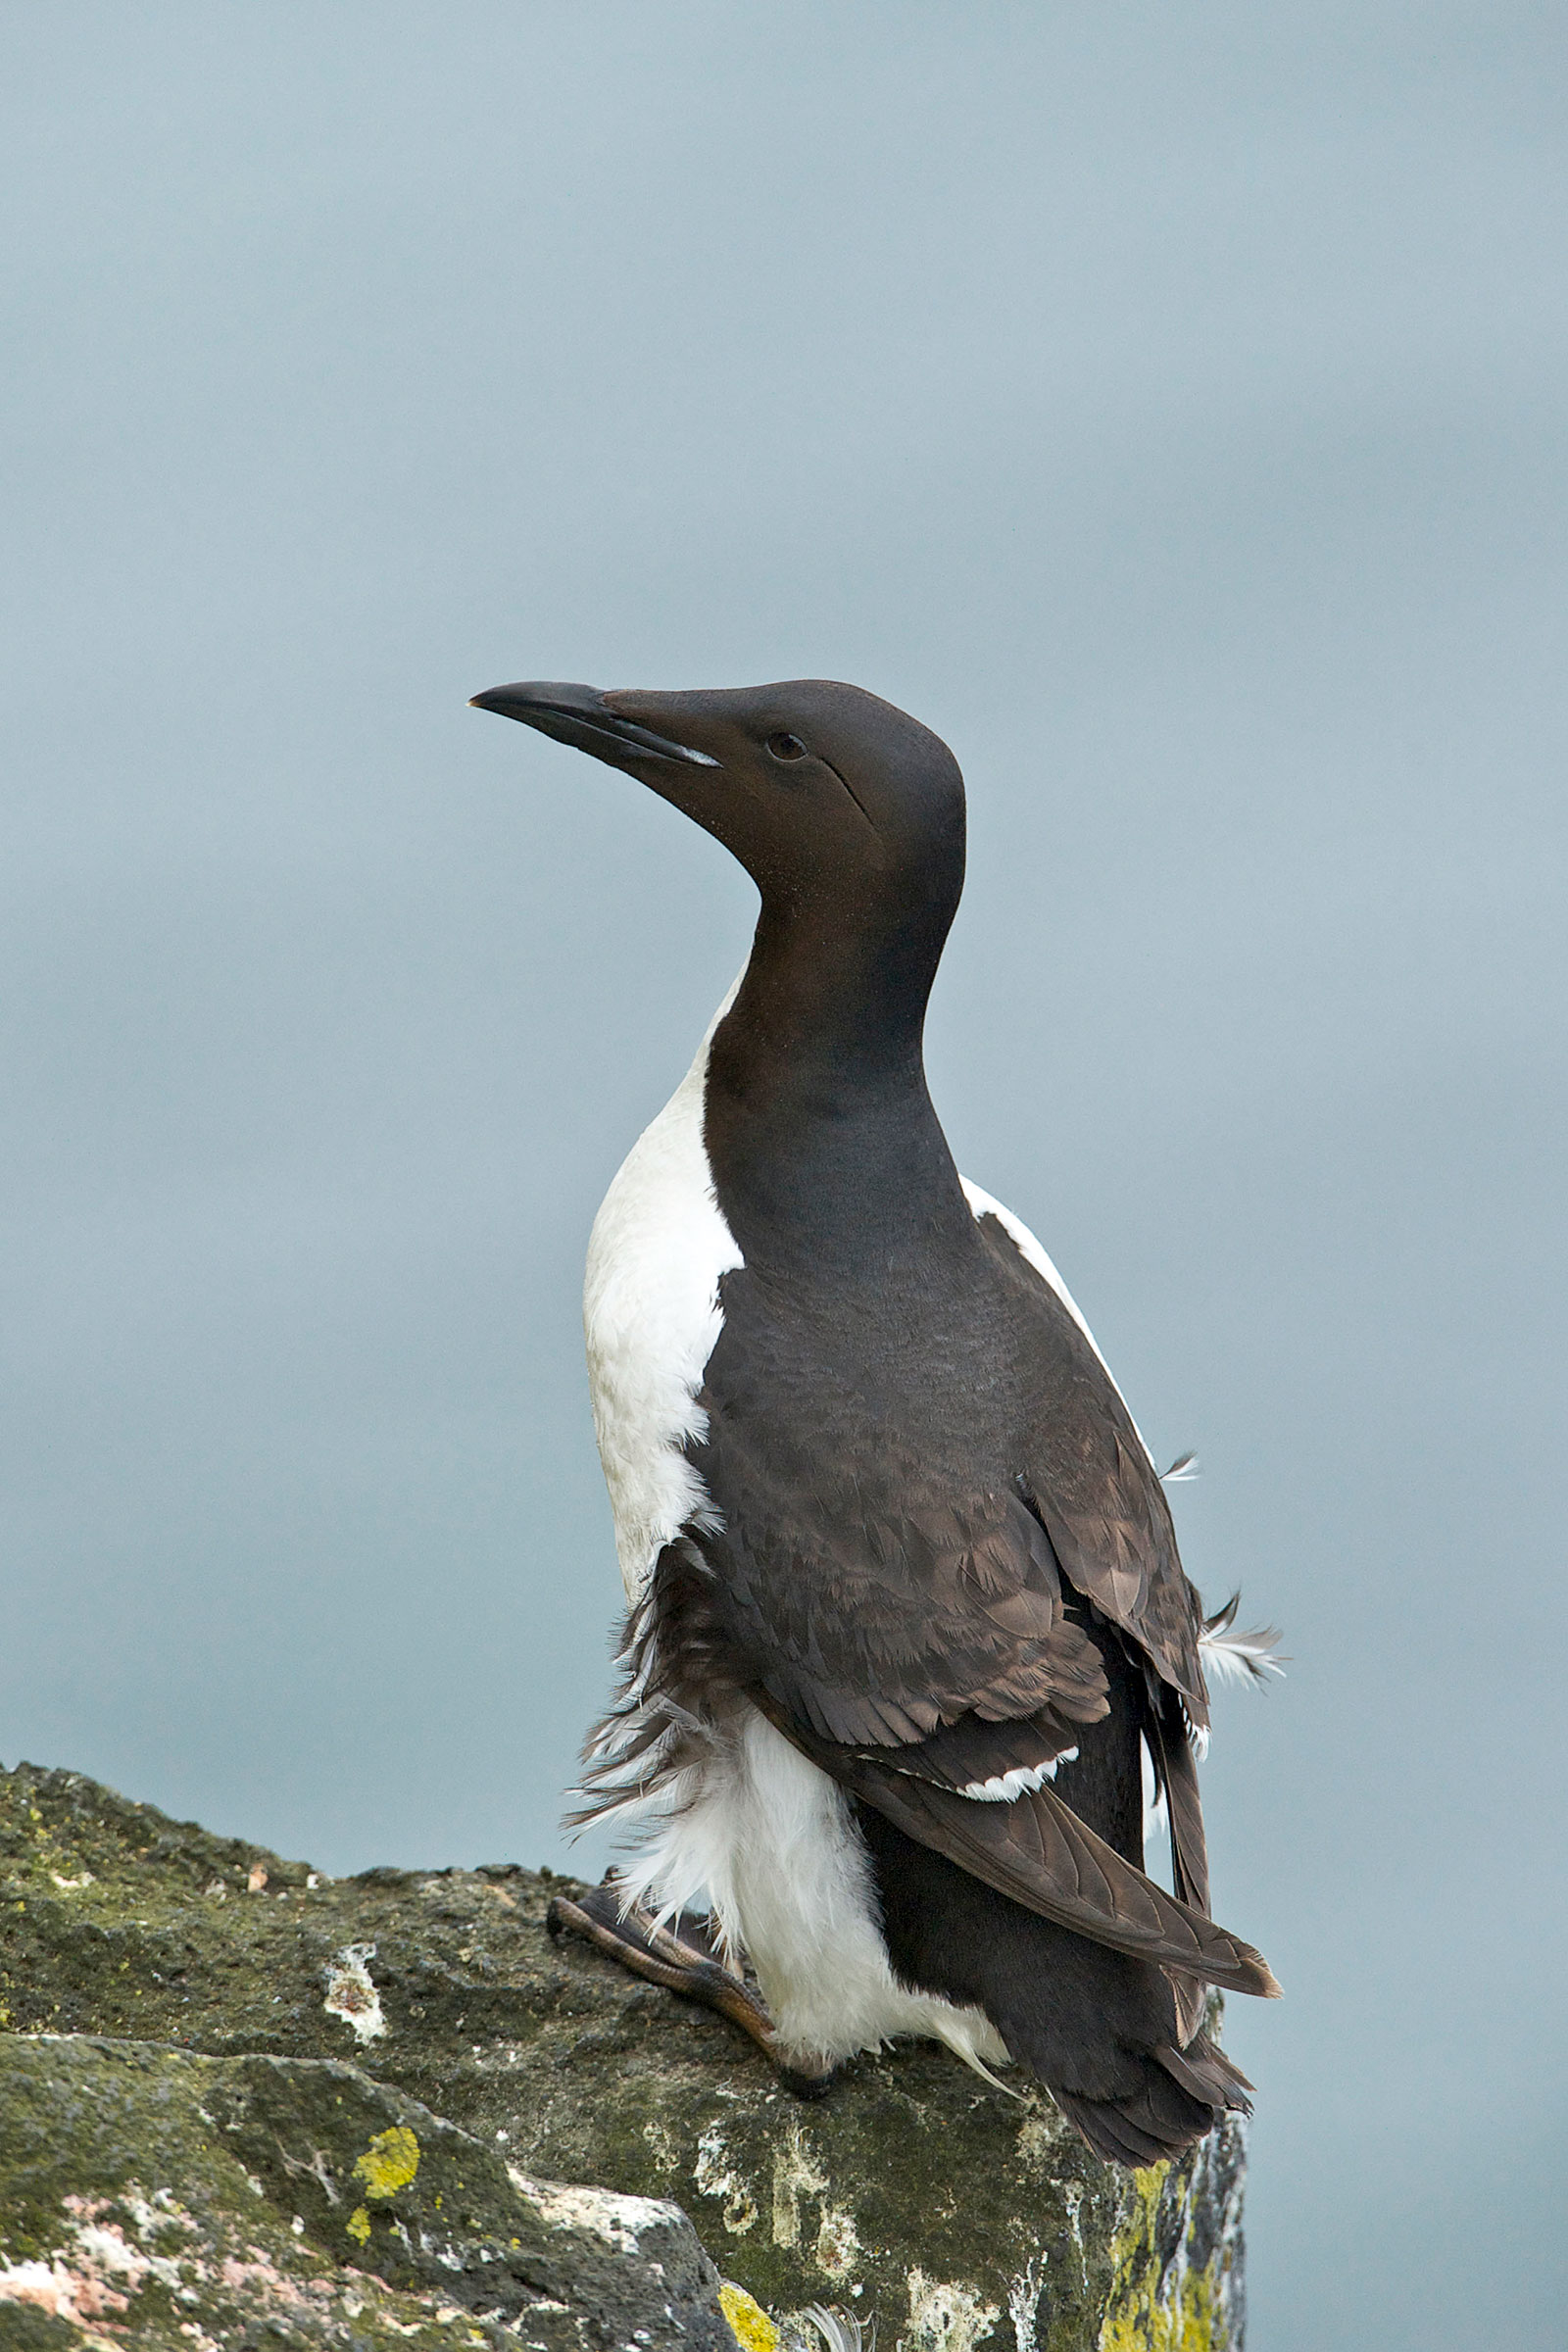 Thick-billed Murres, here in the Pribilof Islands on Bering Sea, are among the deepest-diving seabirds, sometimes plummeting past 600 feet beneath the surface. Enrique R. Aguirre Aves/Alamy